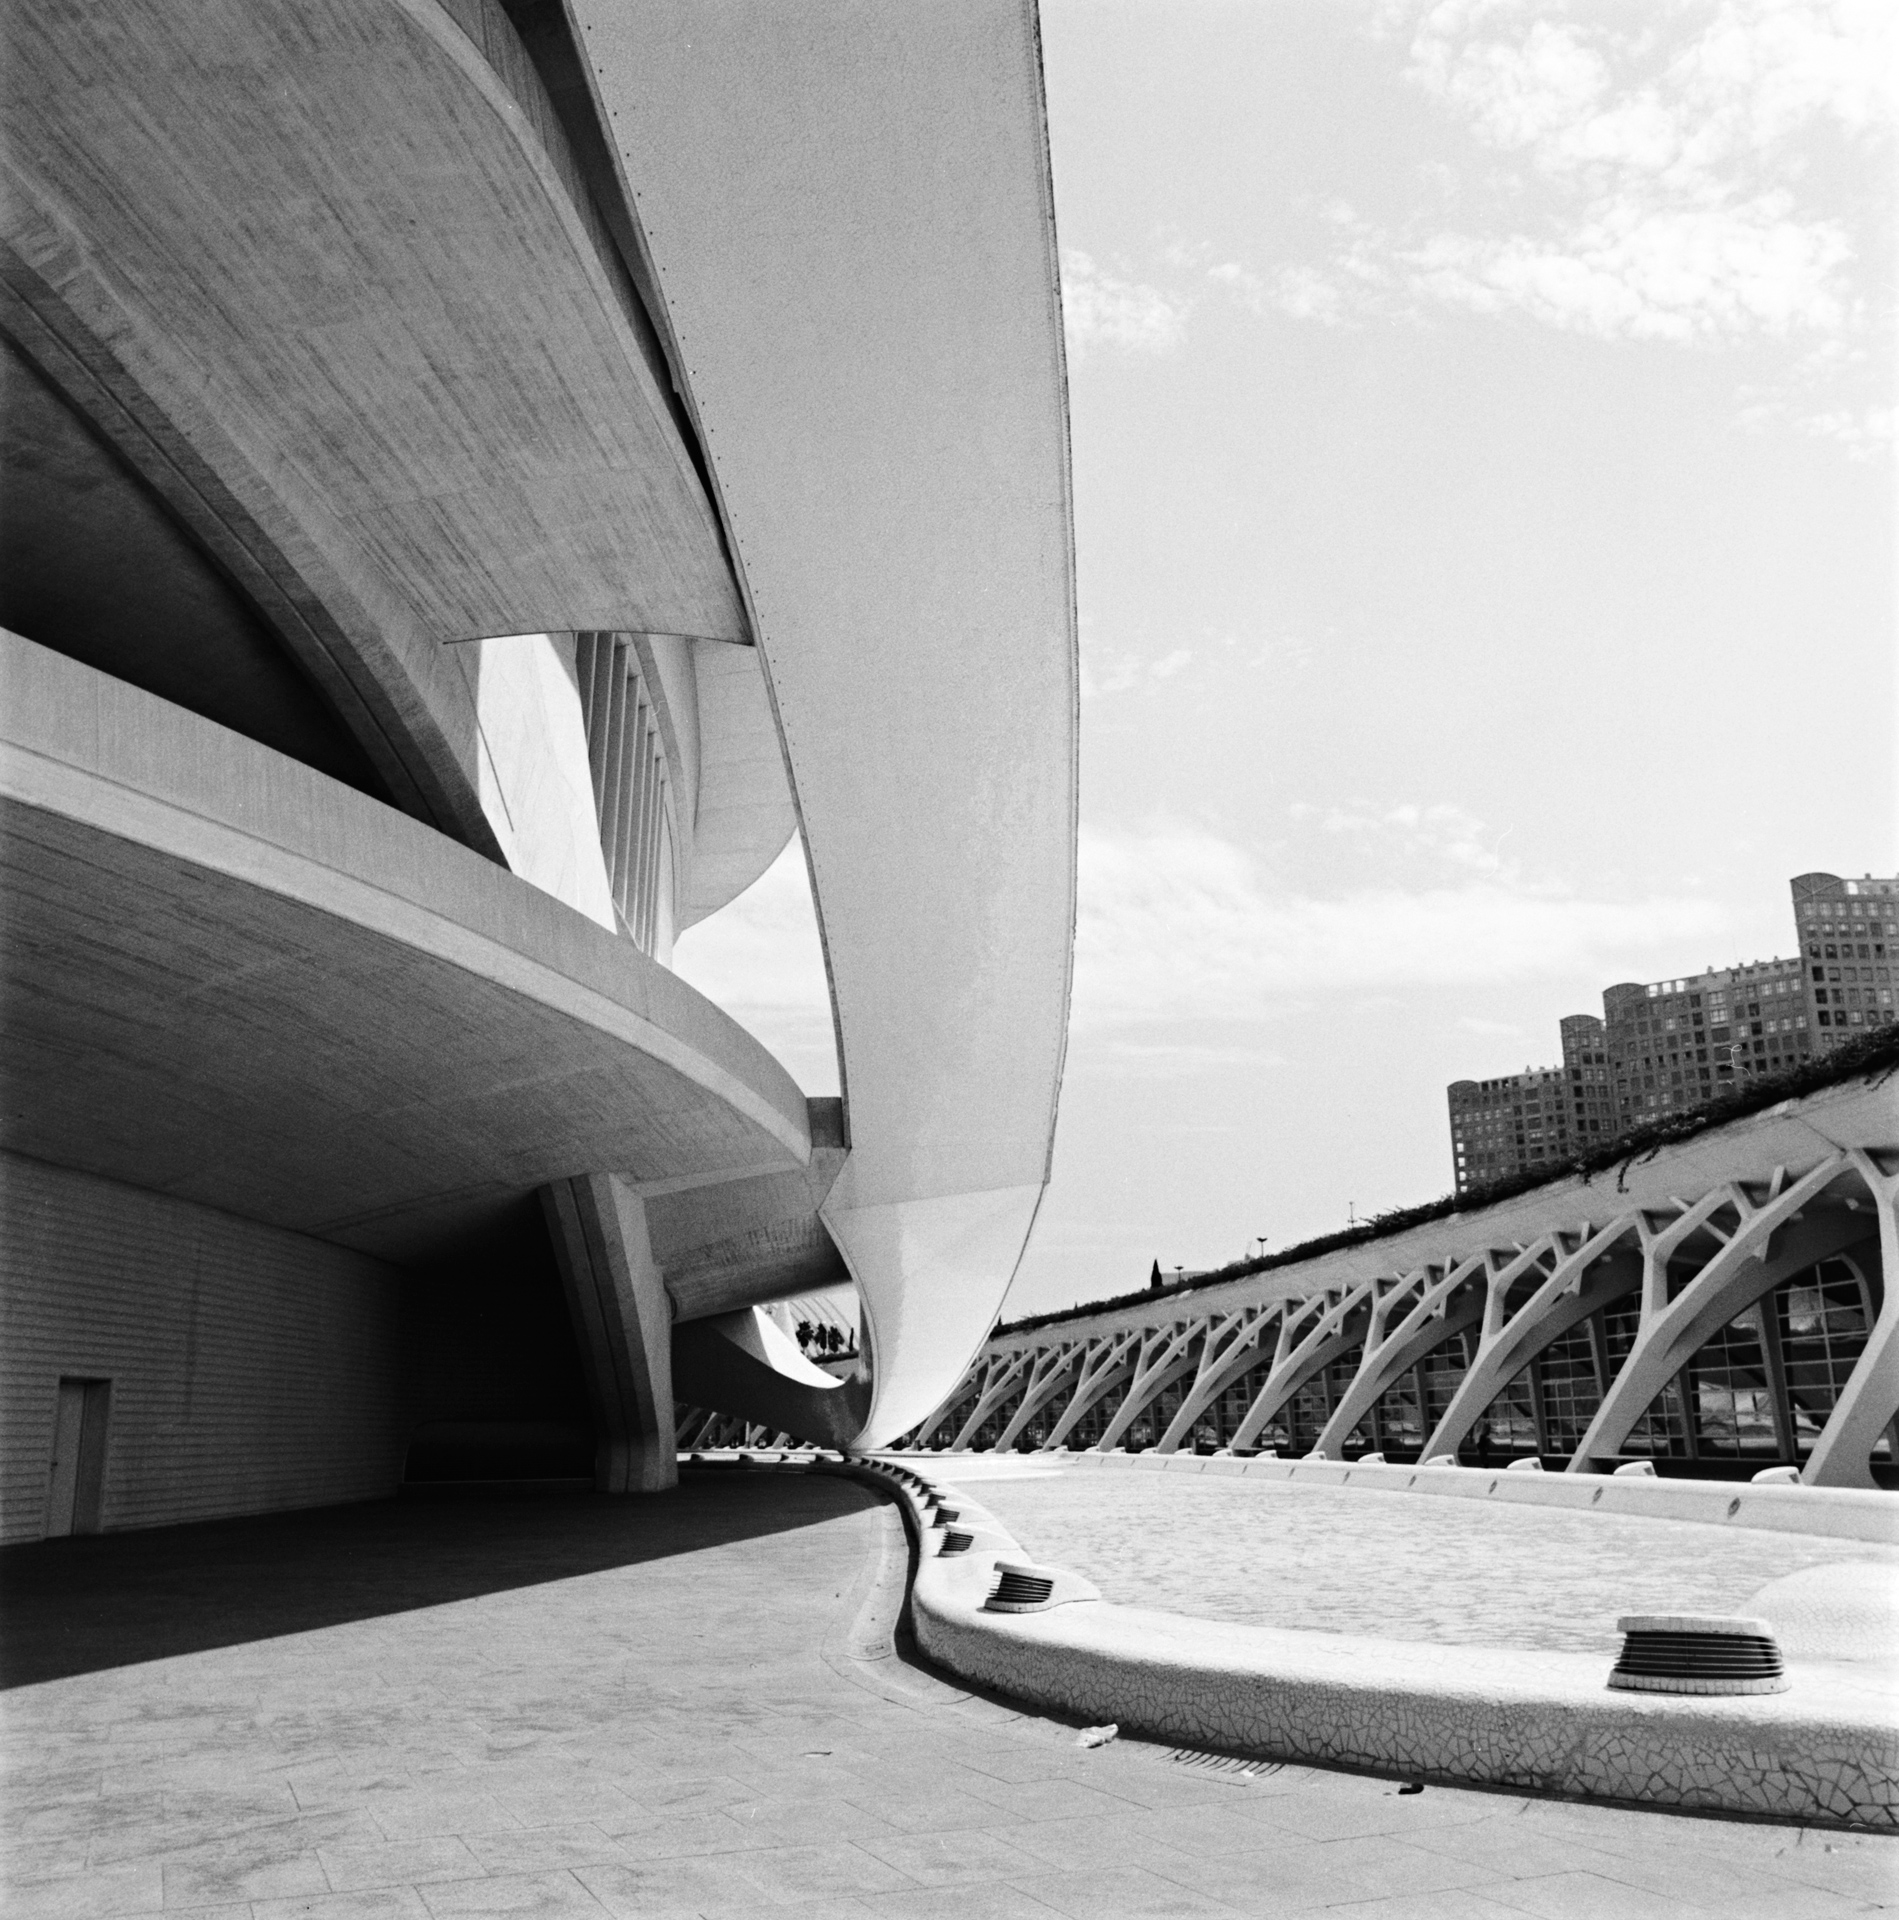 photography by David Hatters in Valencia, Geometries of the sky, film shot with Hasselblad